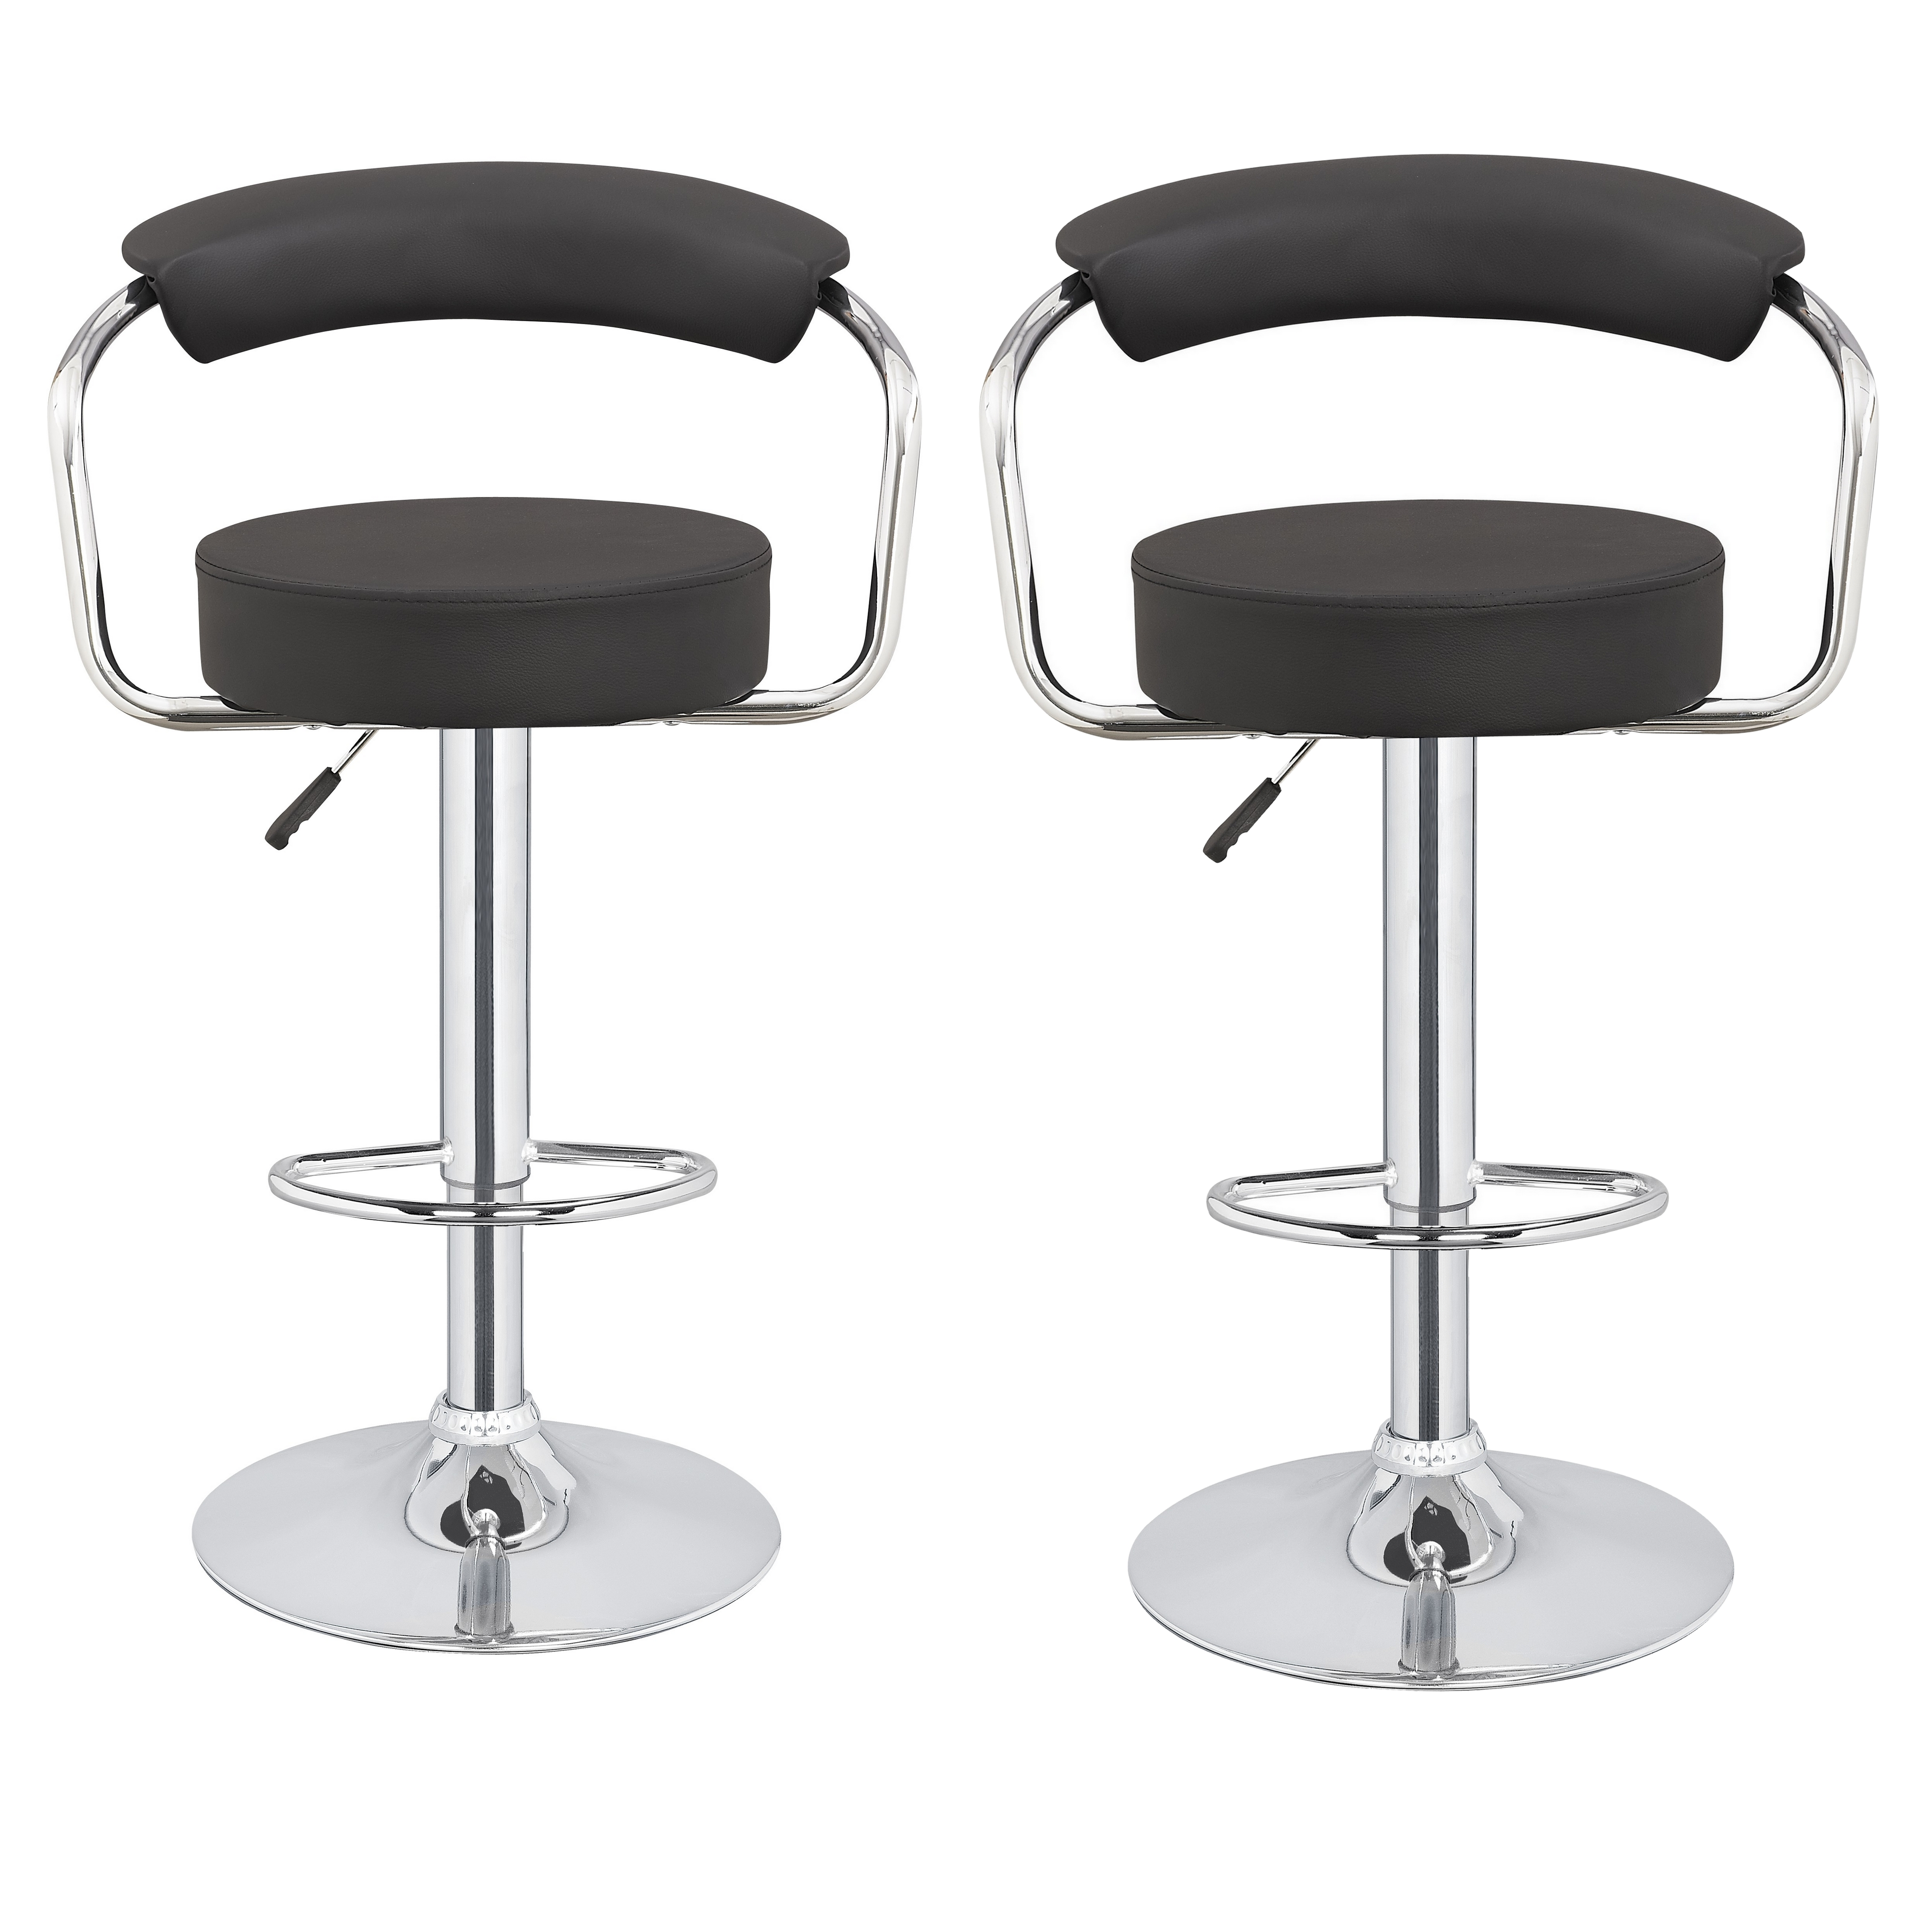 Superior ... Faux Leather Bar Stools / Chairs Product Image